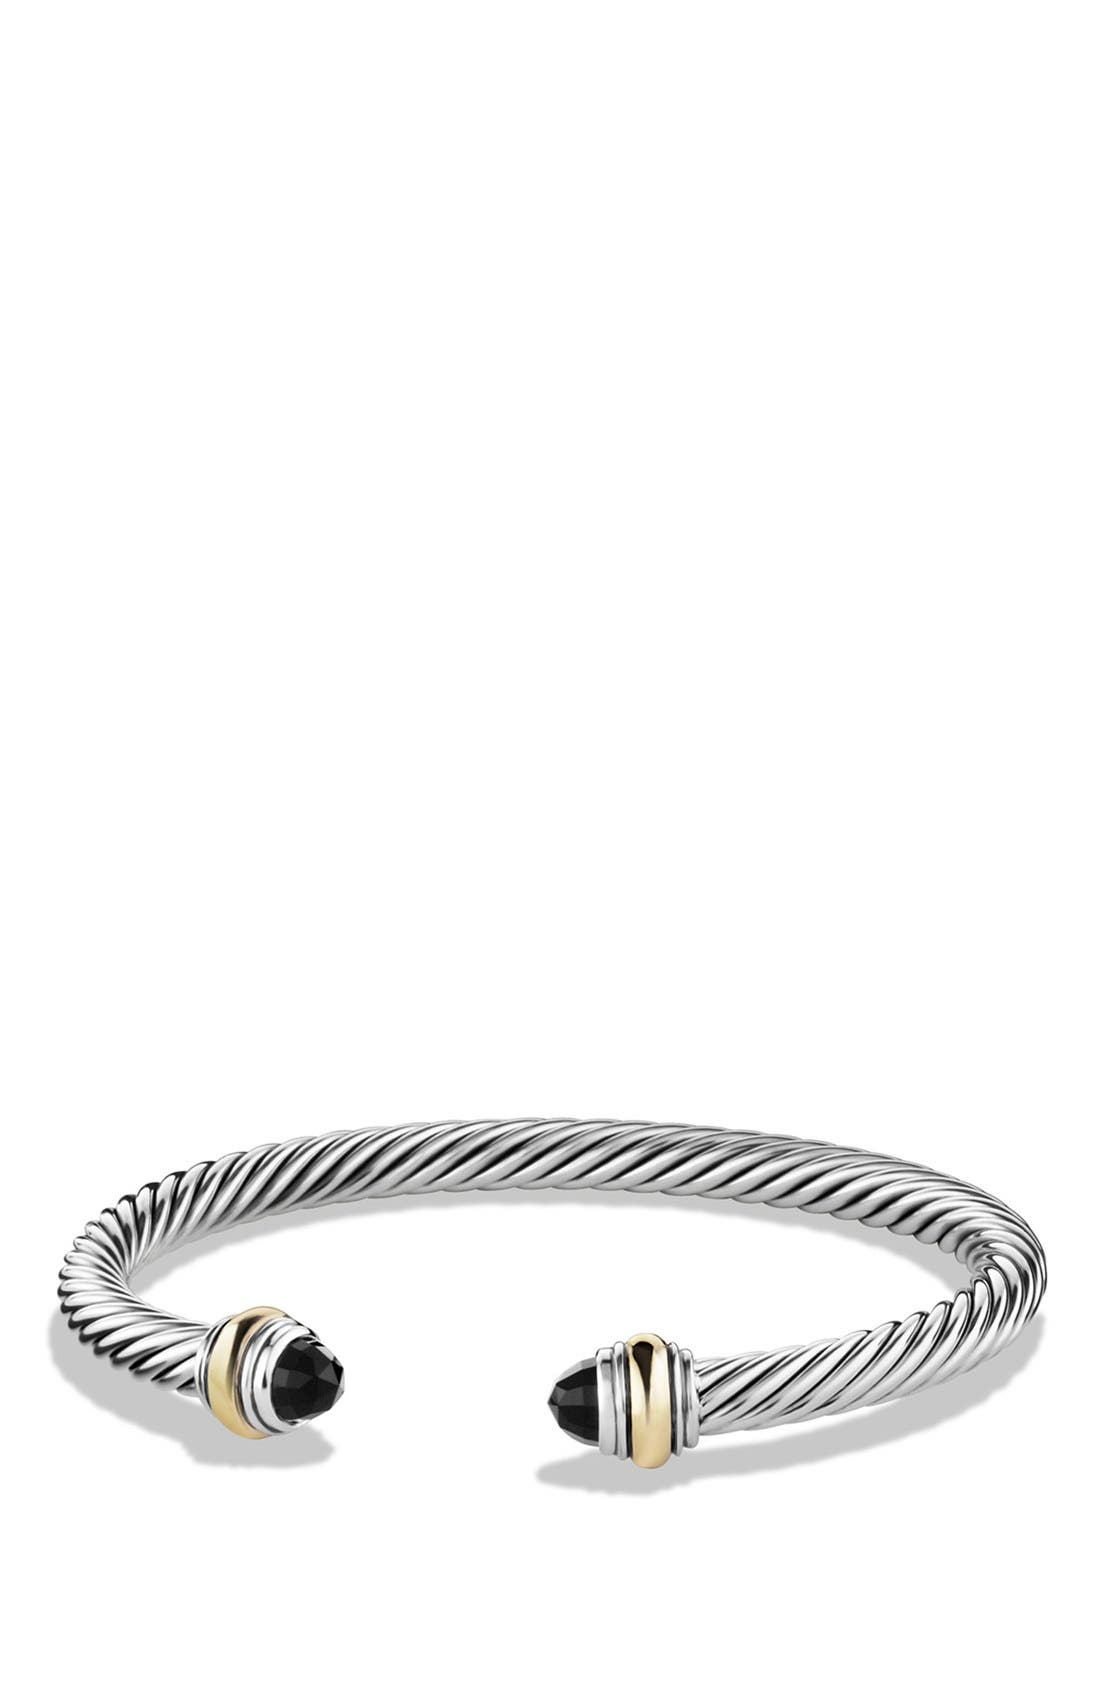 Alternate Image 1 Selected - David Yurman Cable Classics Bracelet with Semiprecious Stones & 14K Gold Accent, 5mm